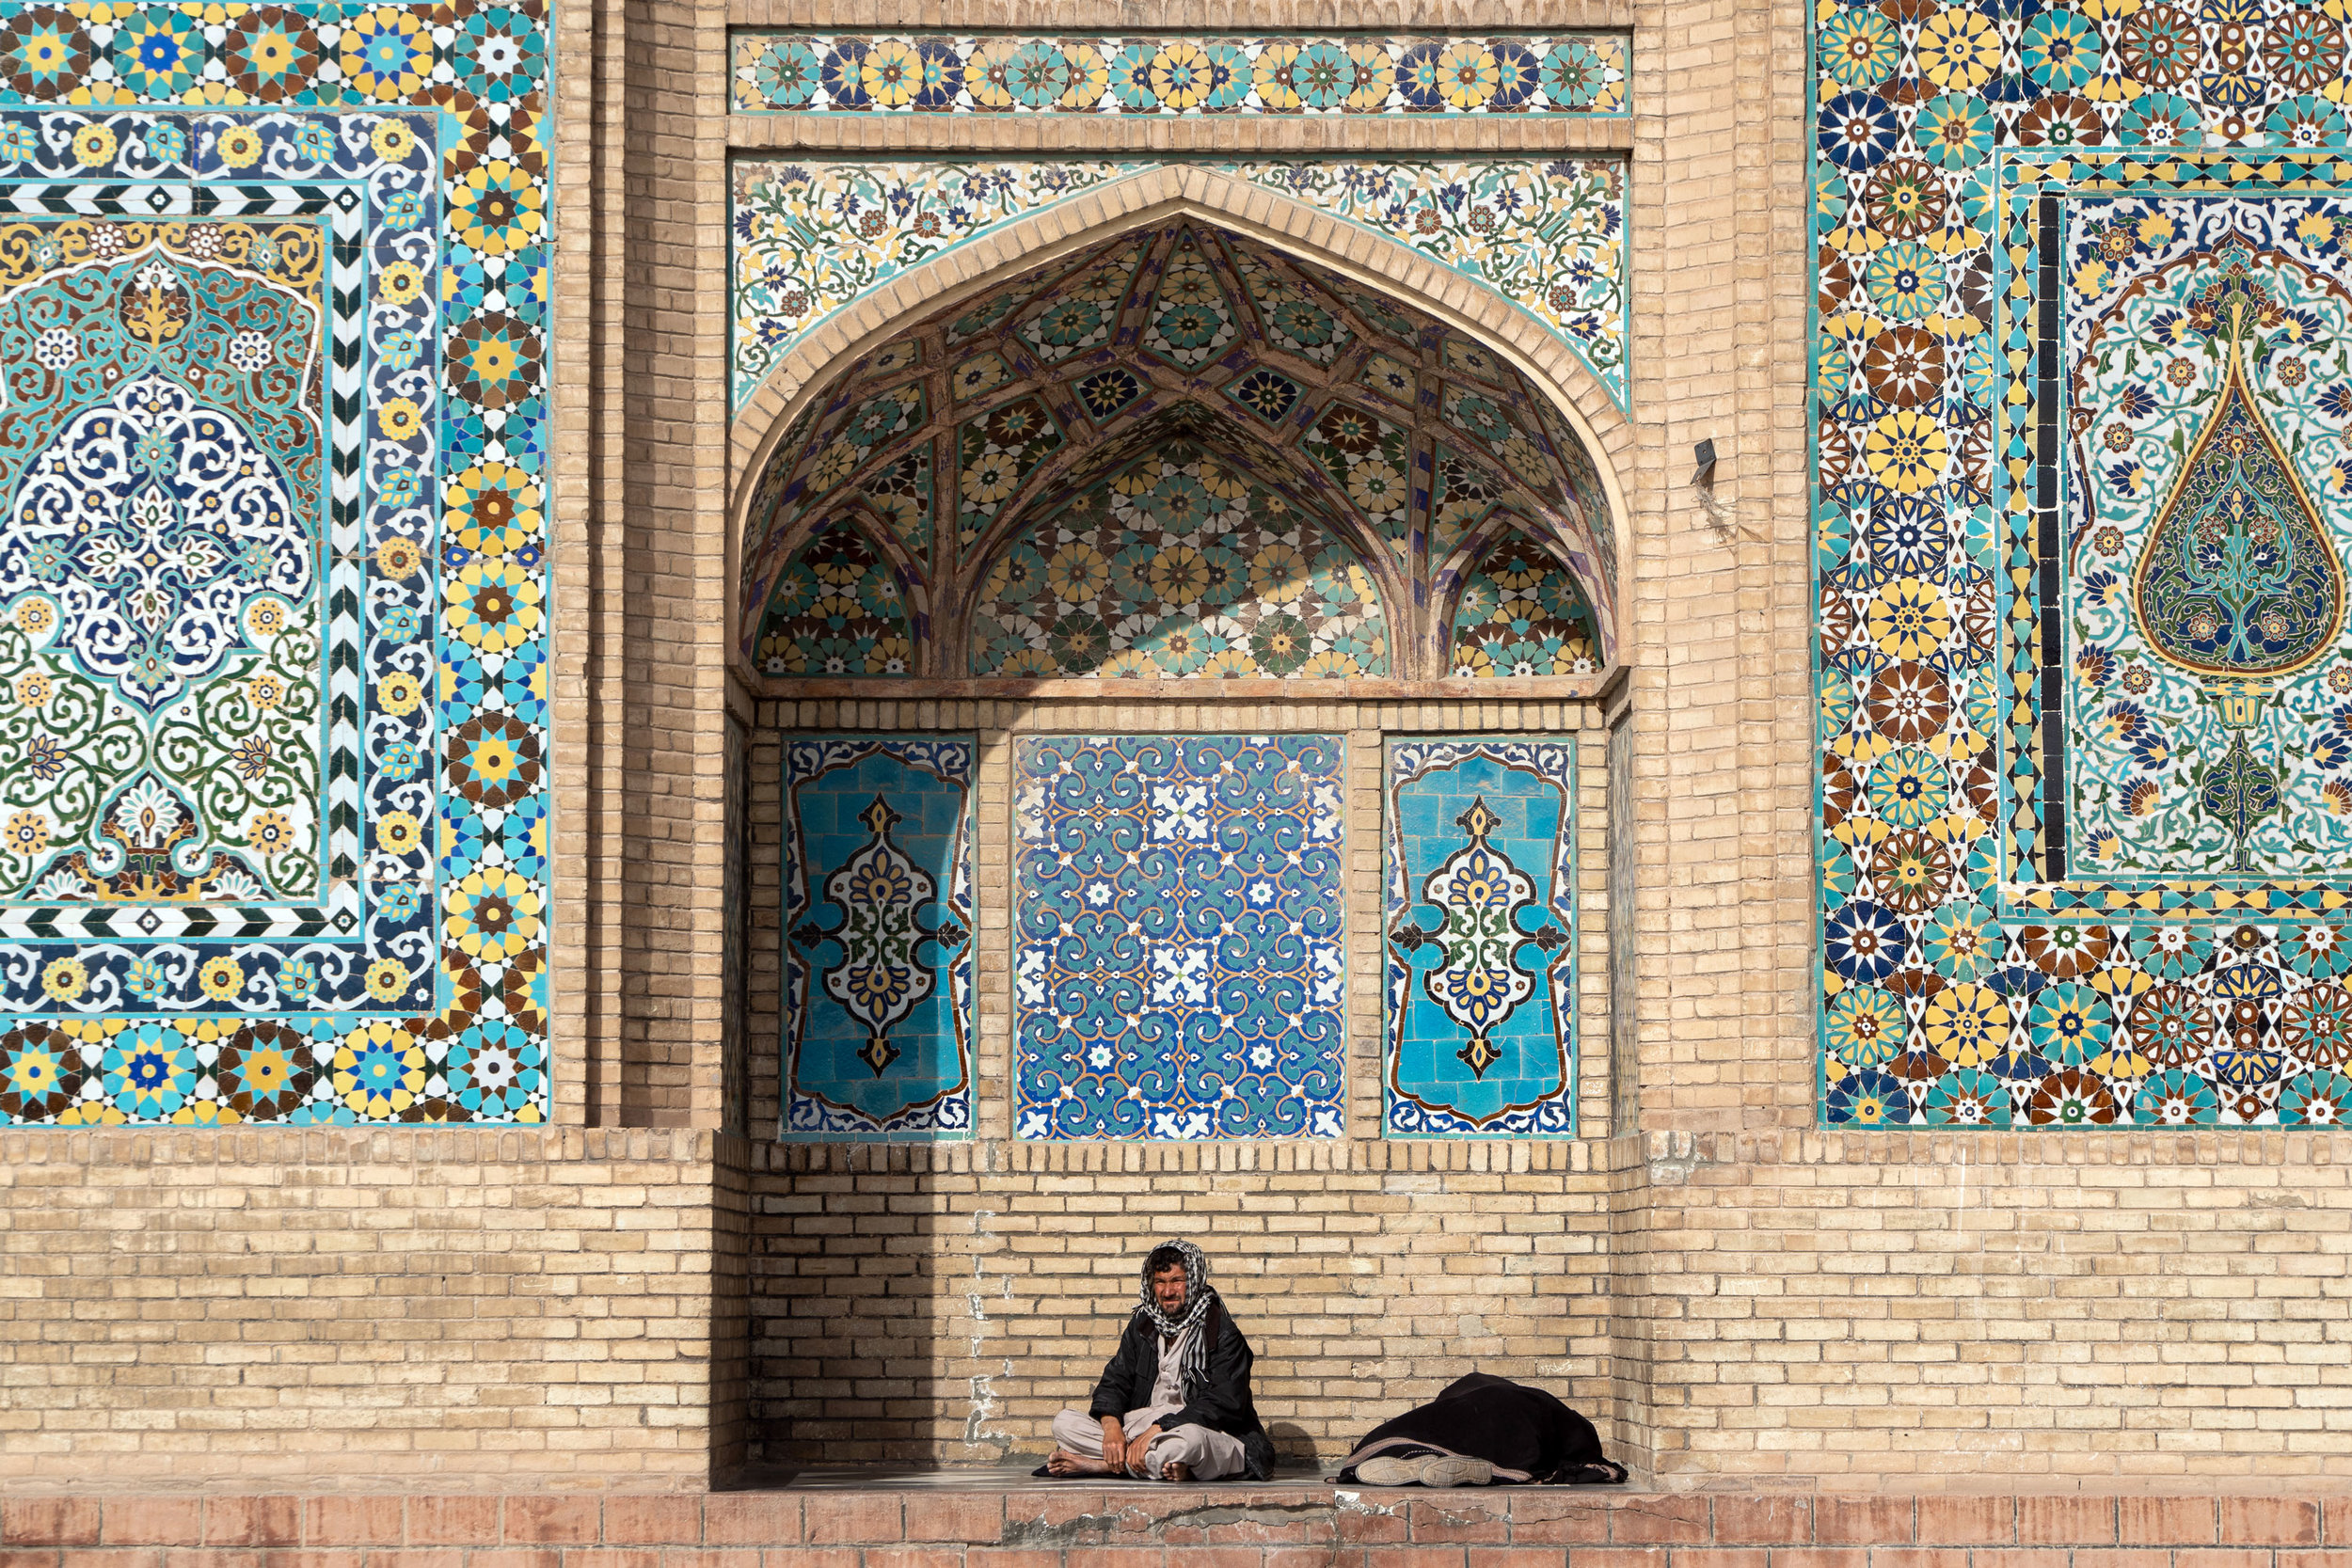 Two men take a rest in an archway at Herat's Friday Mosque.